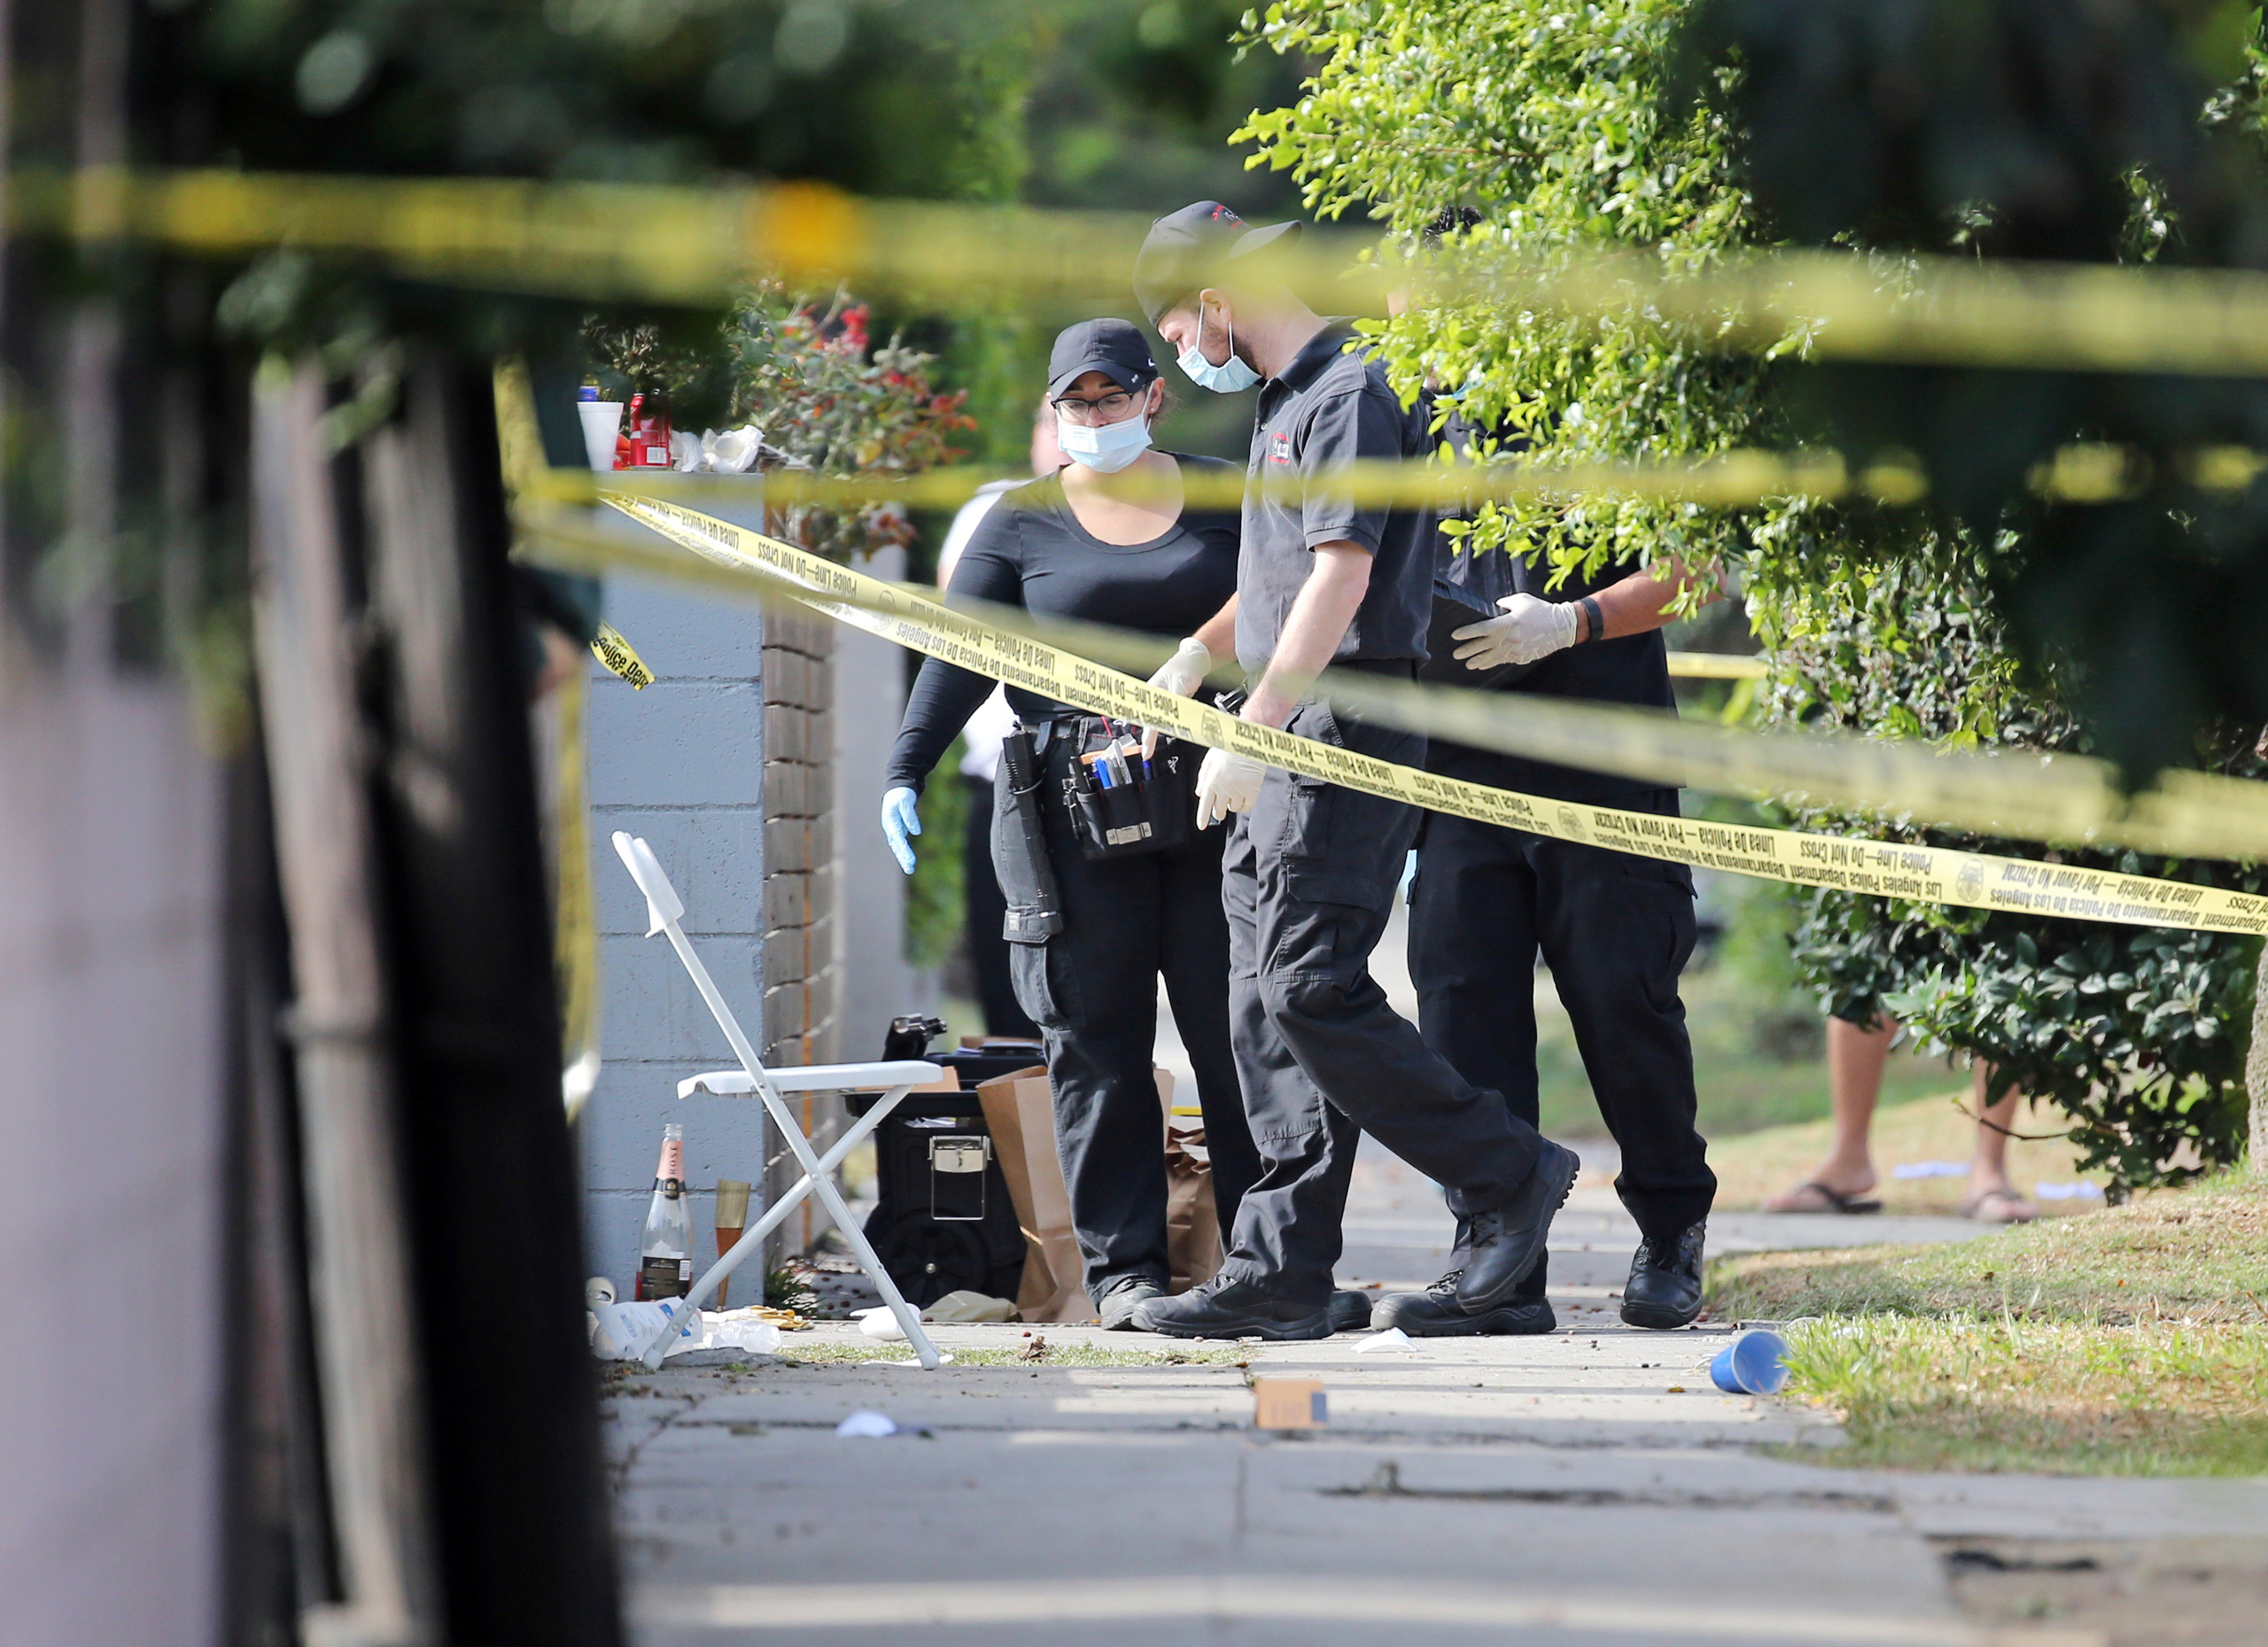 Los Angeles police investigators work the scene of a fatal shooting in the Crenshaw District neighborhood of Los Angeles on Oct. 15, 2016.